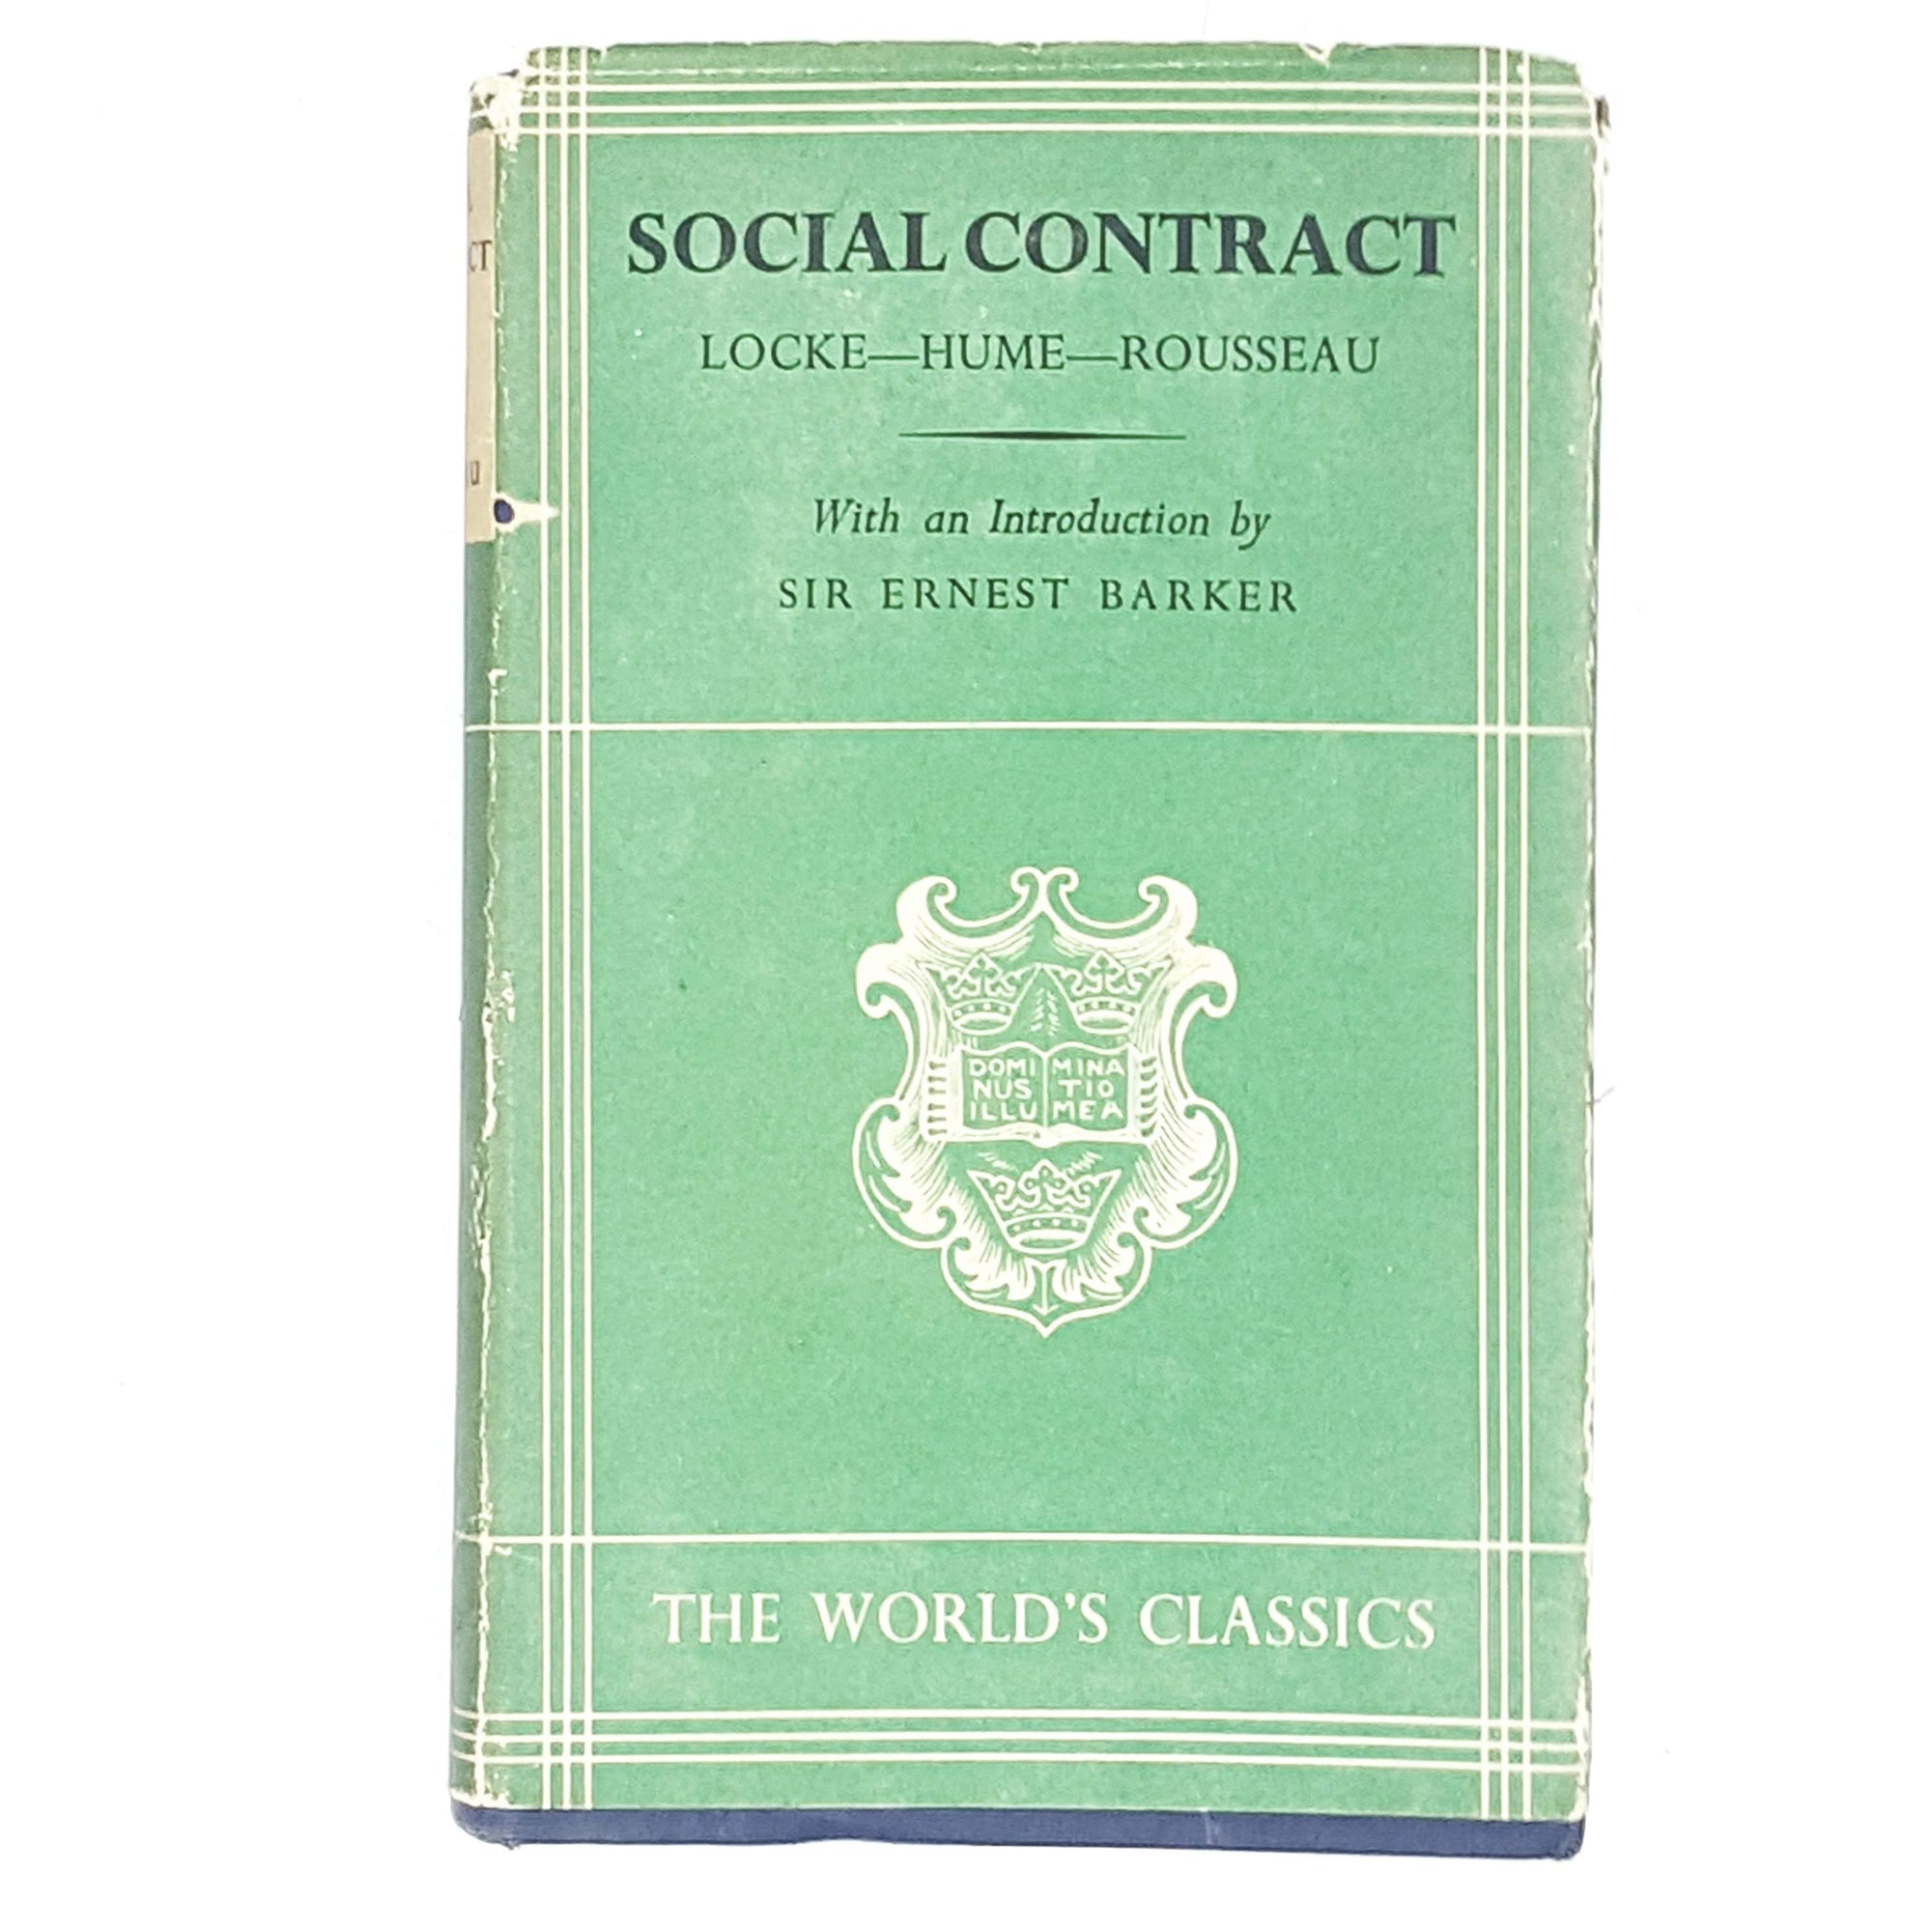 Vintage Philosophy: Social Contract: Locke--Hume--Rousseau 1958 Oxford University Press Hardcover